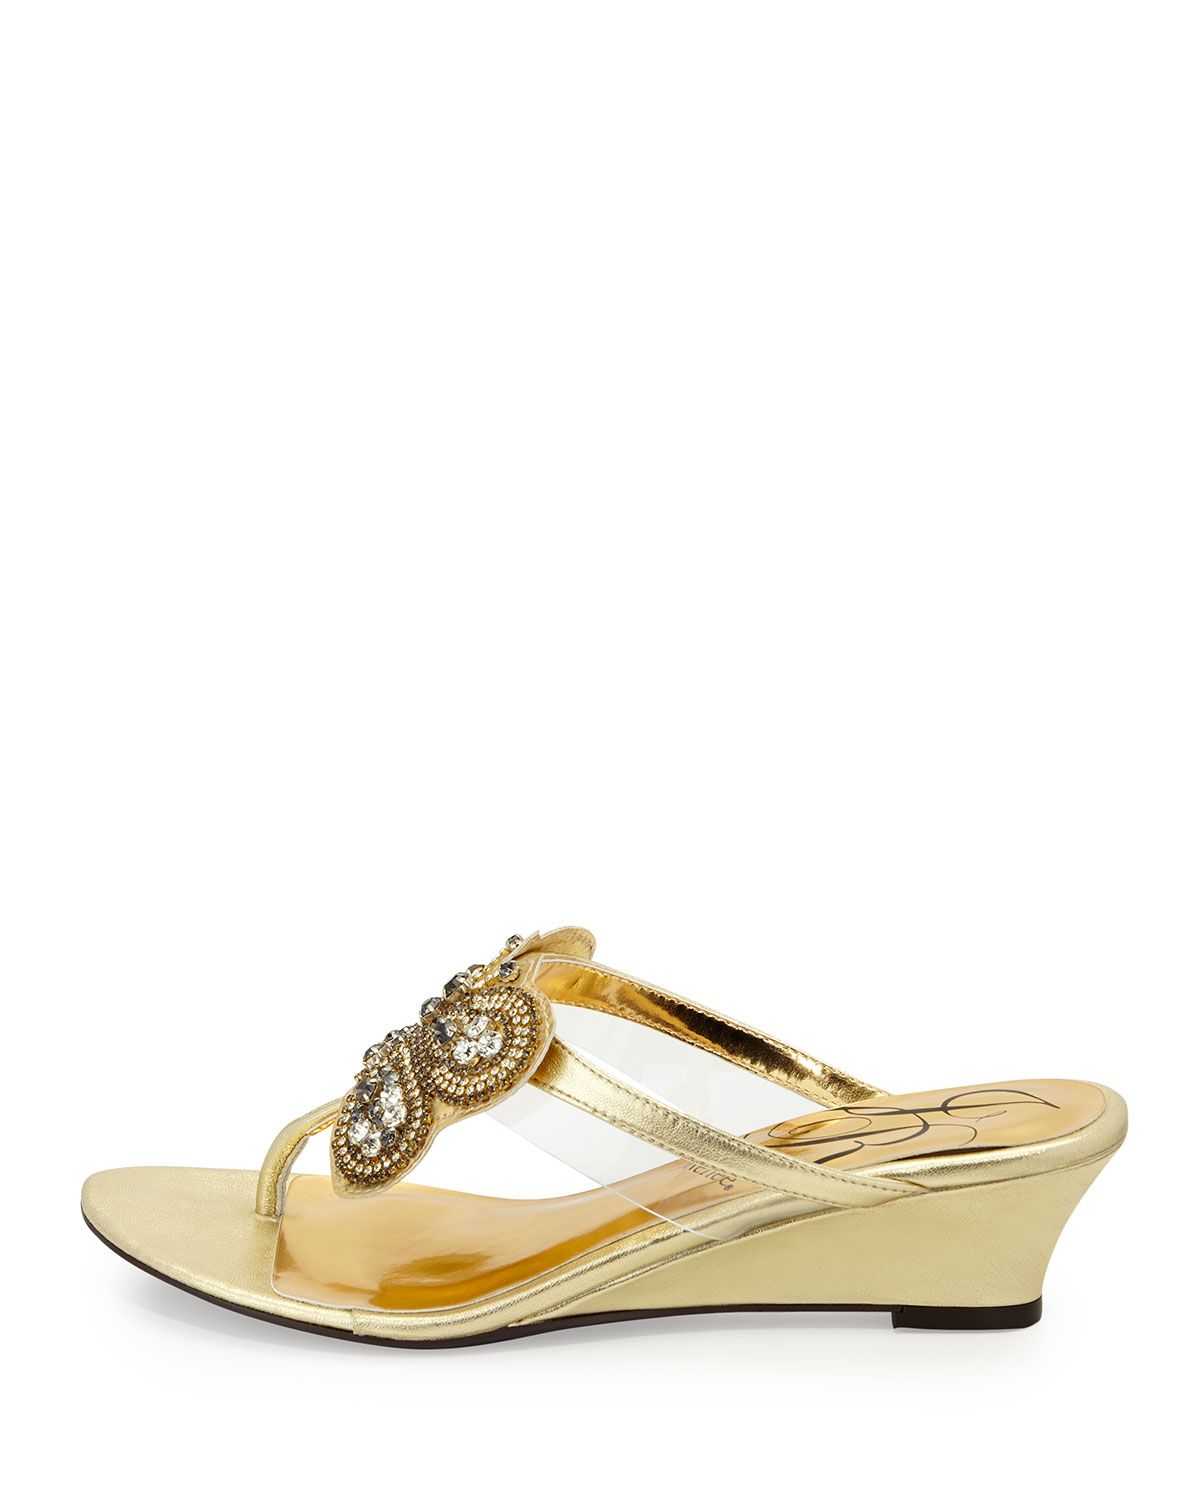 Freshy Butterfly Leather Thong Sandal, Gold